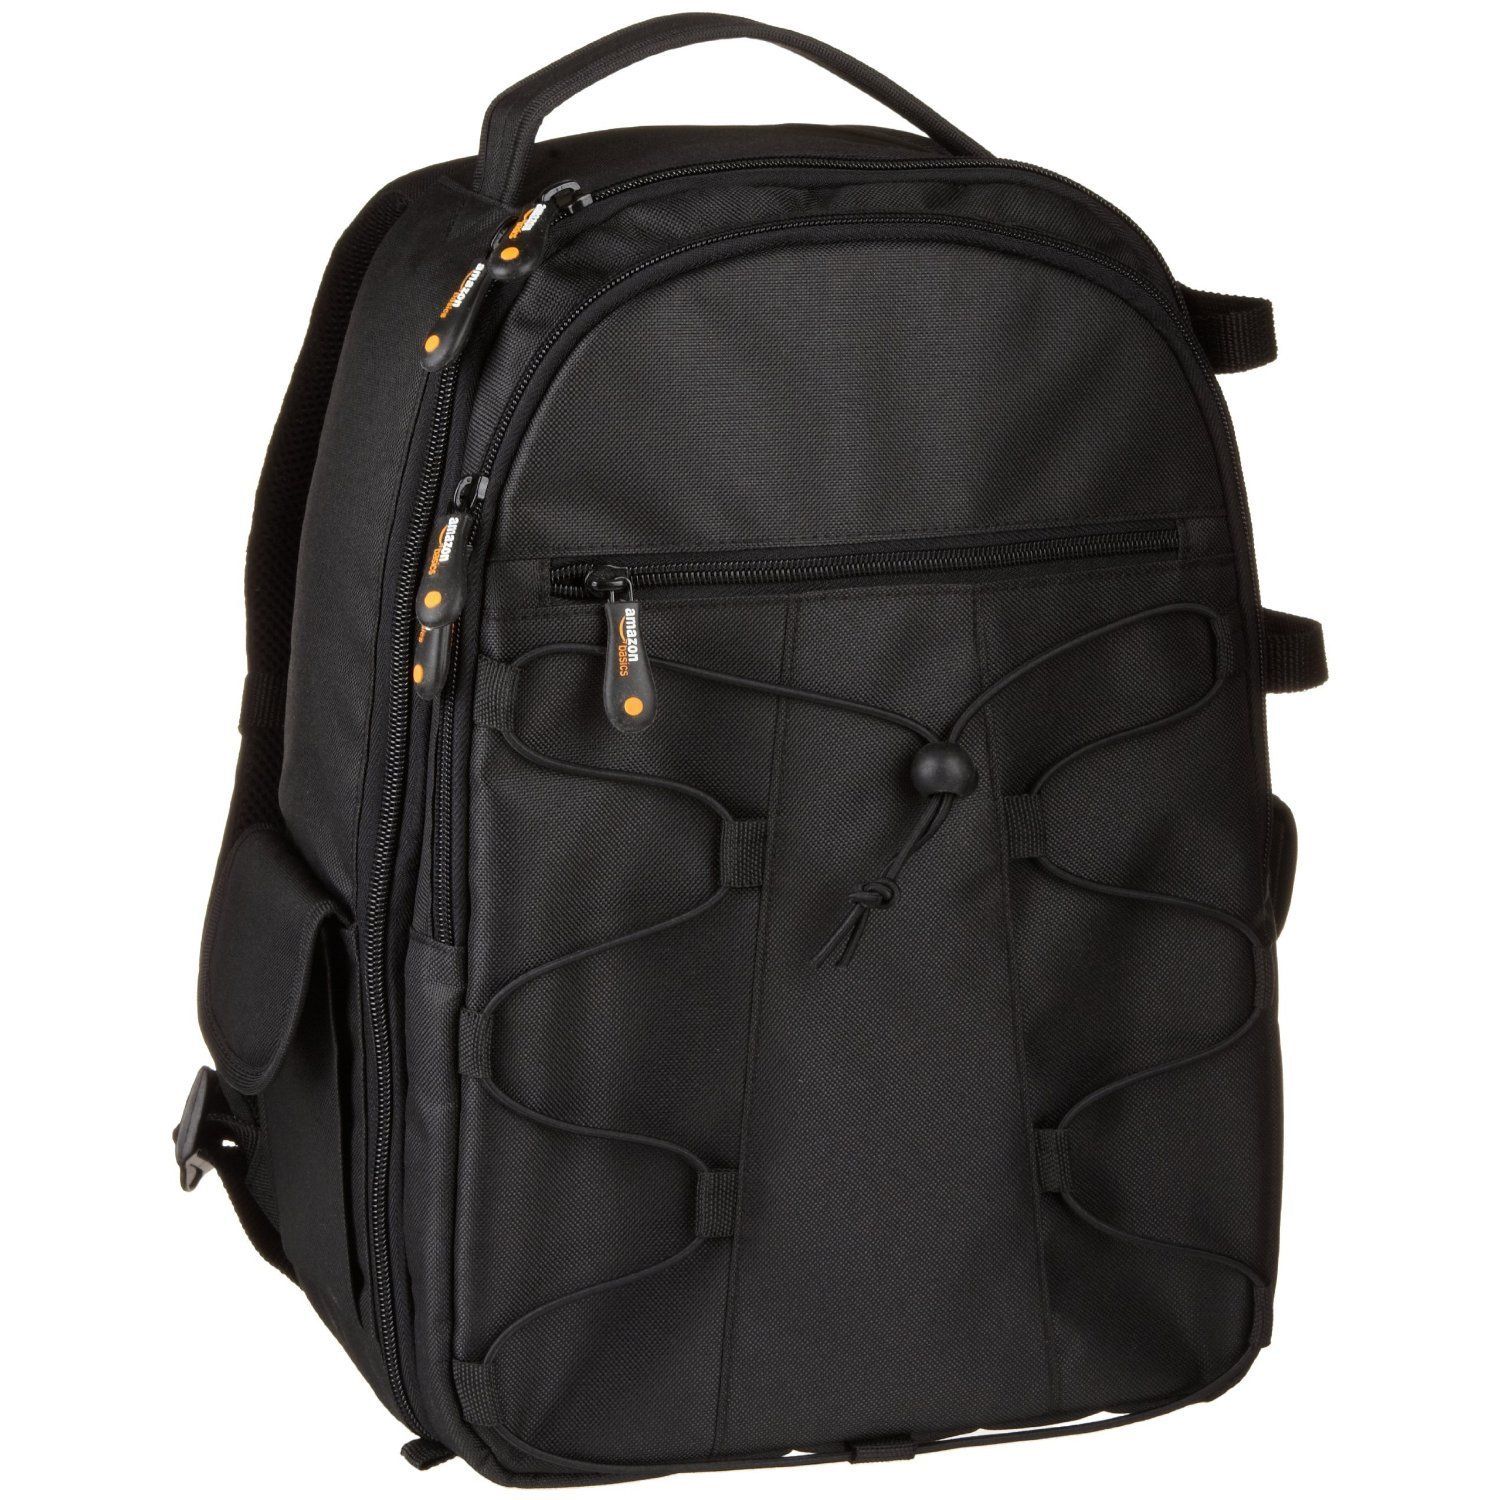 AmazonBasics Backpack for SLR/DSLR Cameras